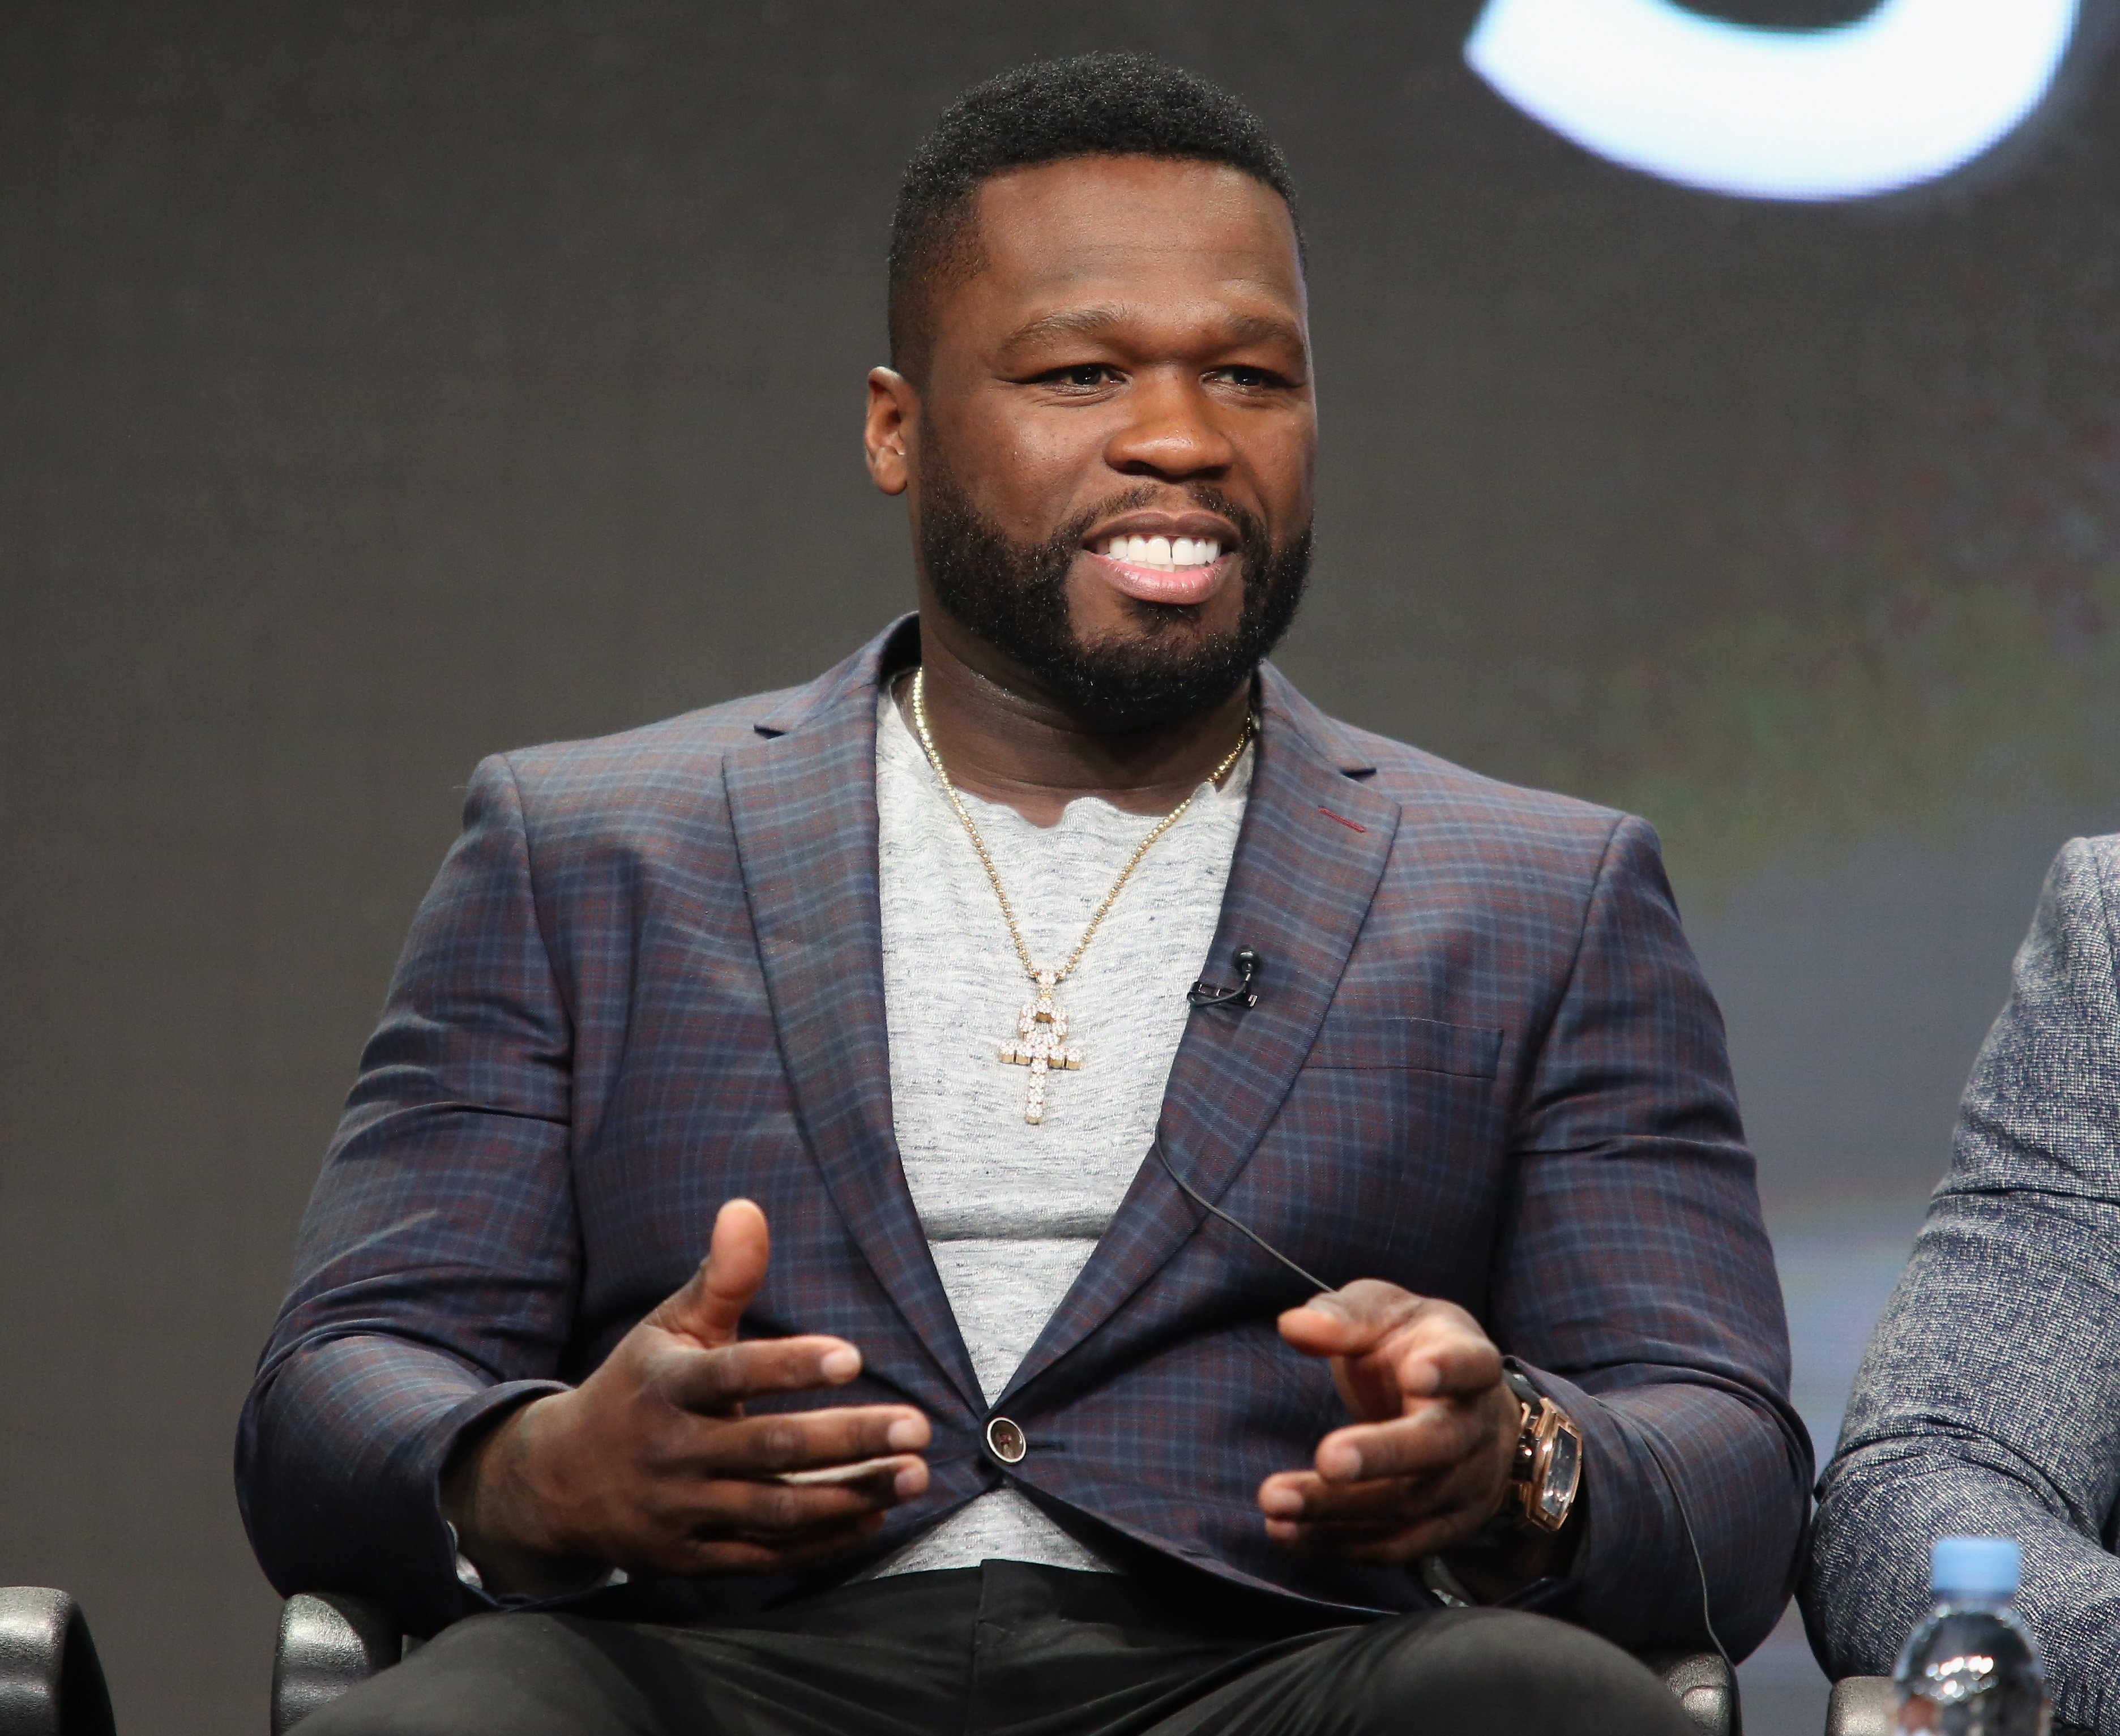 50 Cent at a panel discussion during the 2016 Summer TCA Tour. | Photo: Getty Images